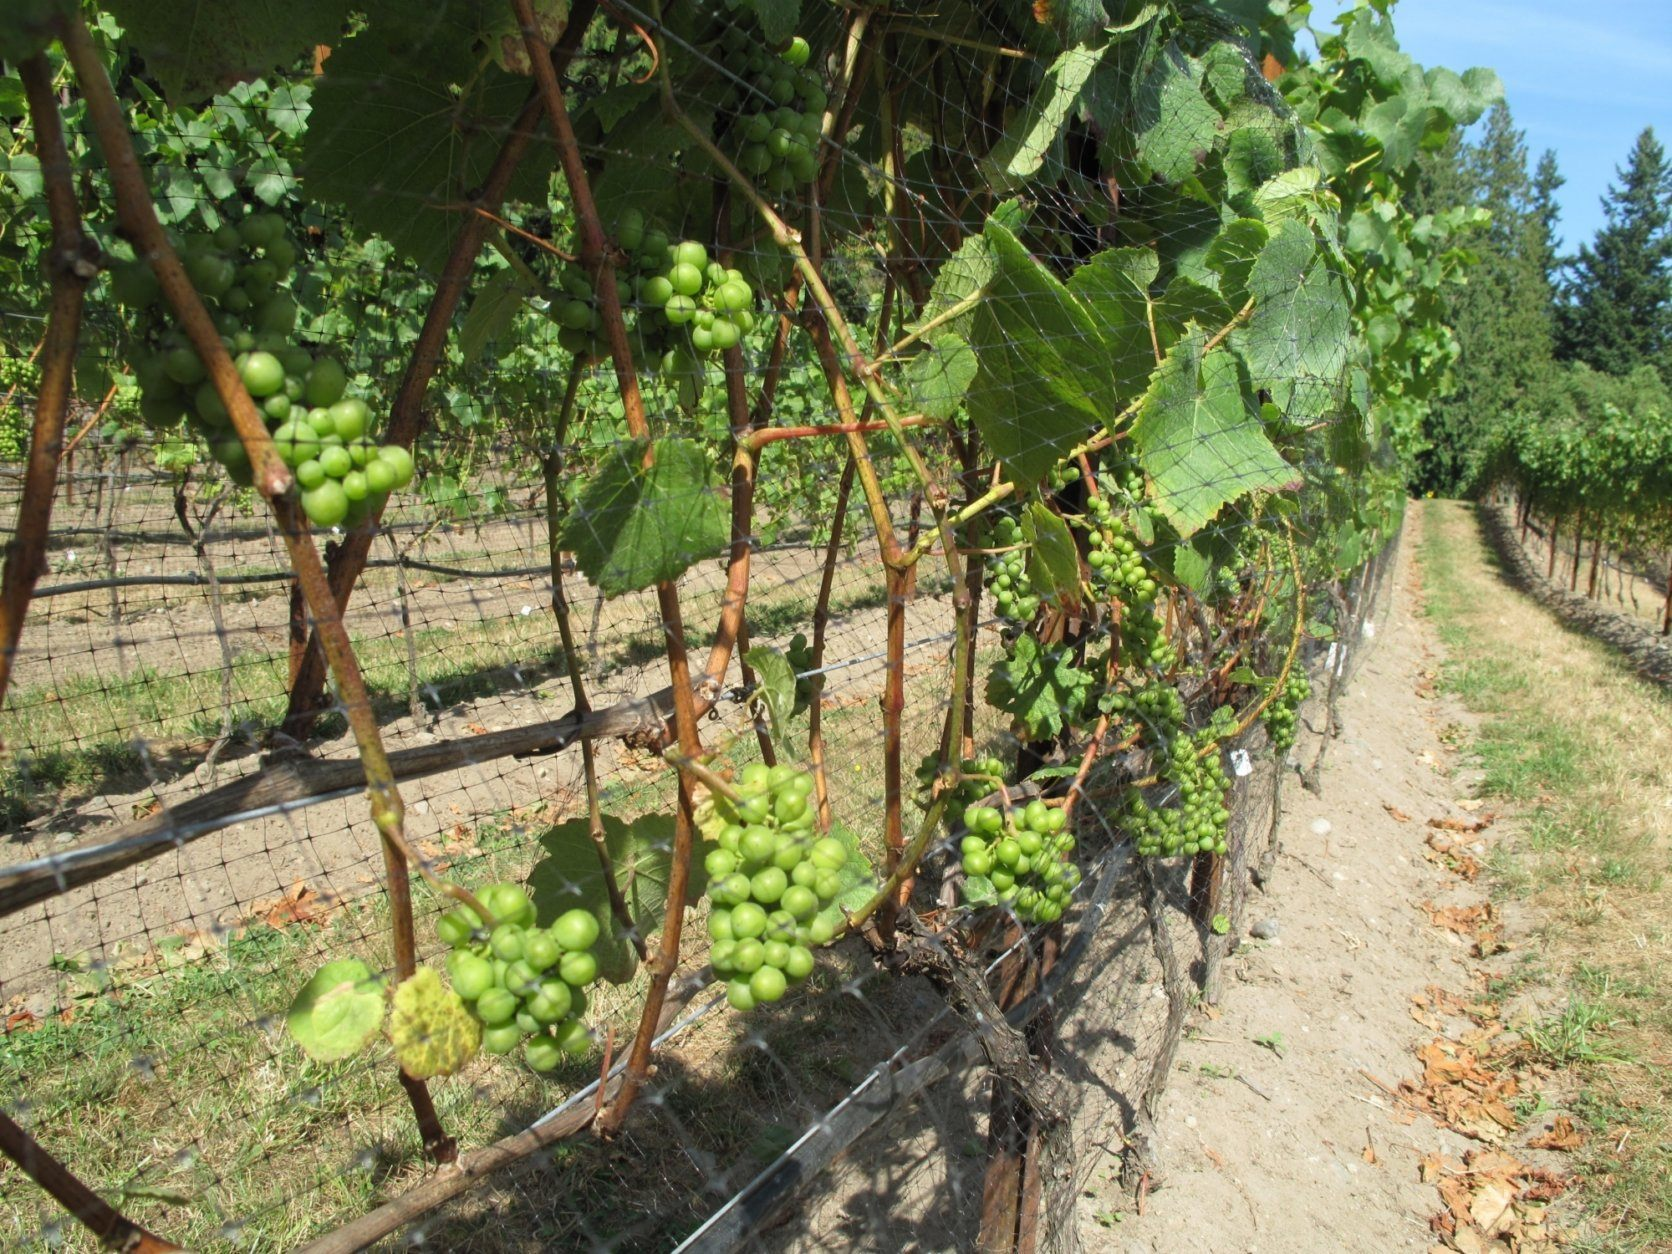 This Sept. 15, 2012 photo taken in a vineyard near Clinton, Wash., shows wine grapes maturing after their leaf canopy was stripped and netted, the latter to prevent the fruit from being eaten by birds. Grapevines should be pruned back each year during their dormant period, usually in February through March. (Dean Fosdick via AP)